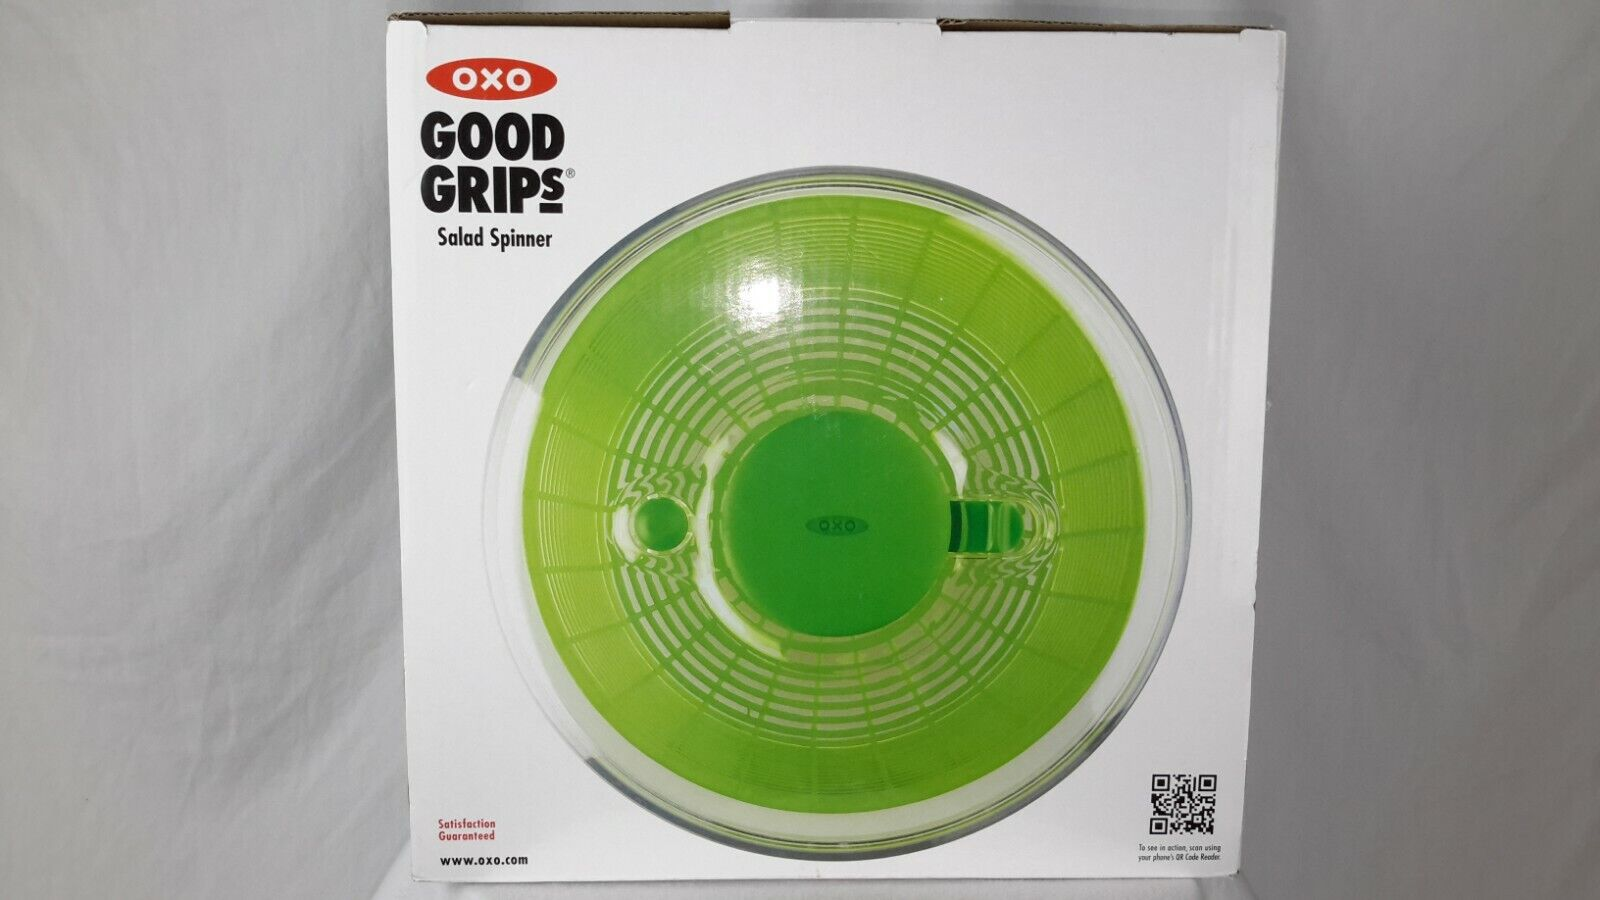 OXO Good Grips Salad Spinner 4.0 BPA free #1 Rated Dishwasher Safe New in Box